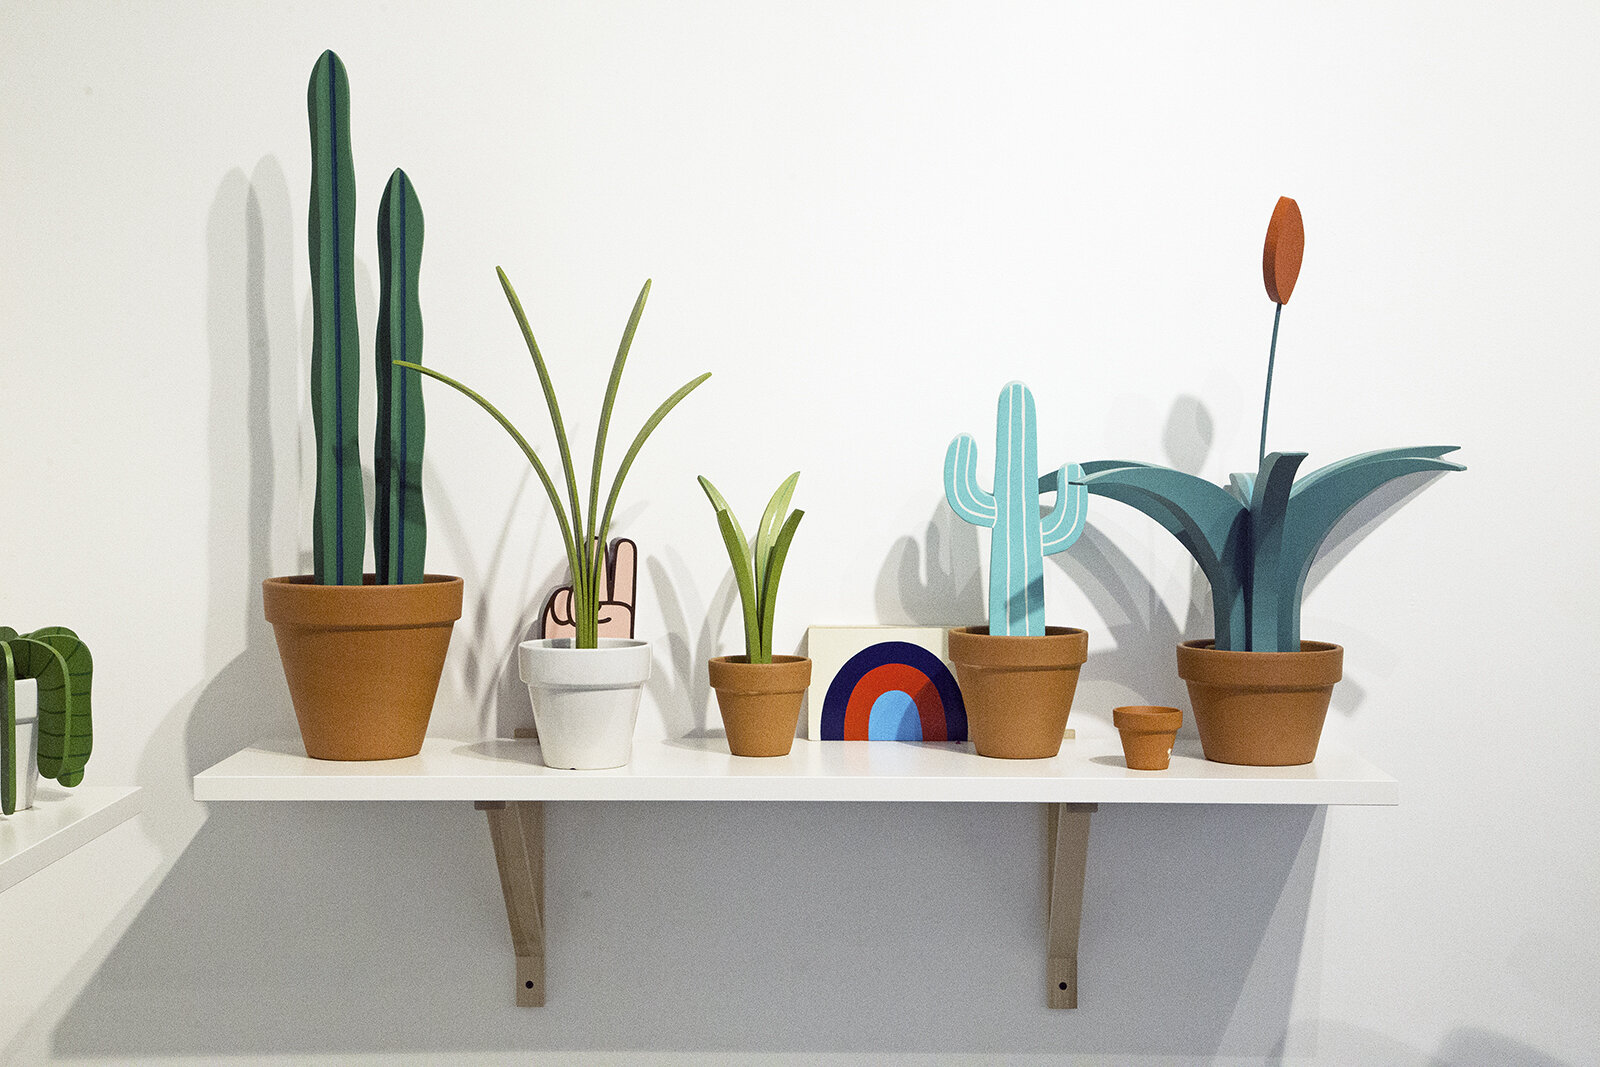 Fake plant sculptures by sign painter Jeff Canham